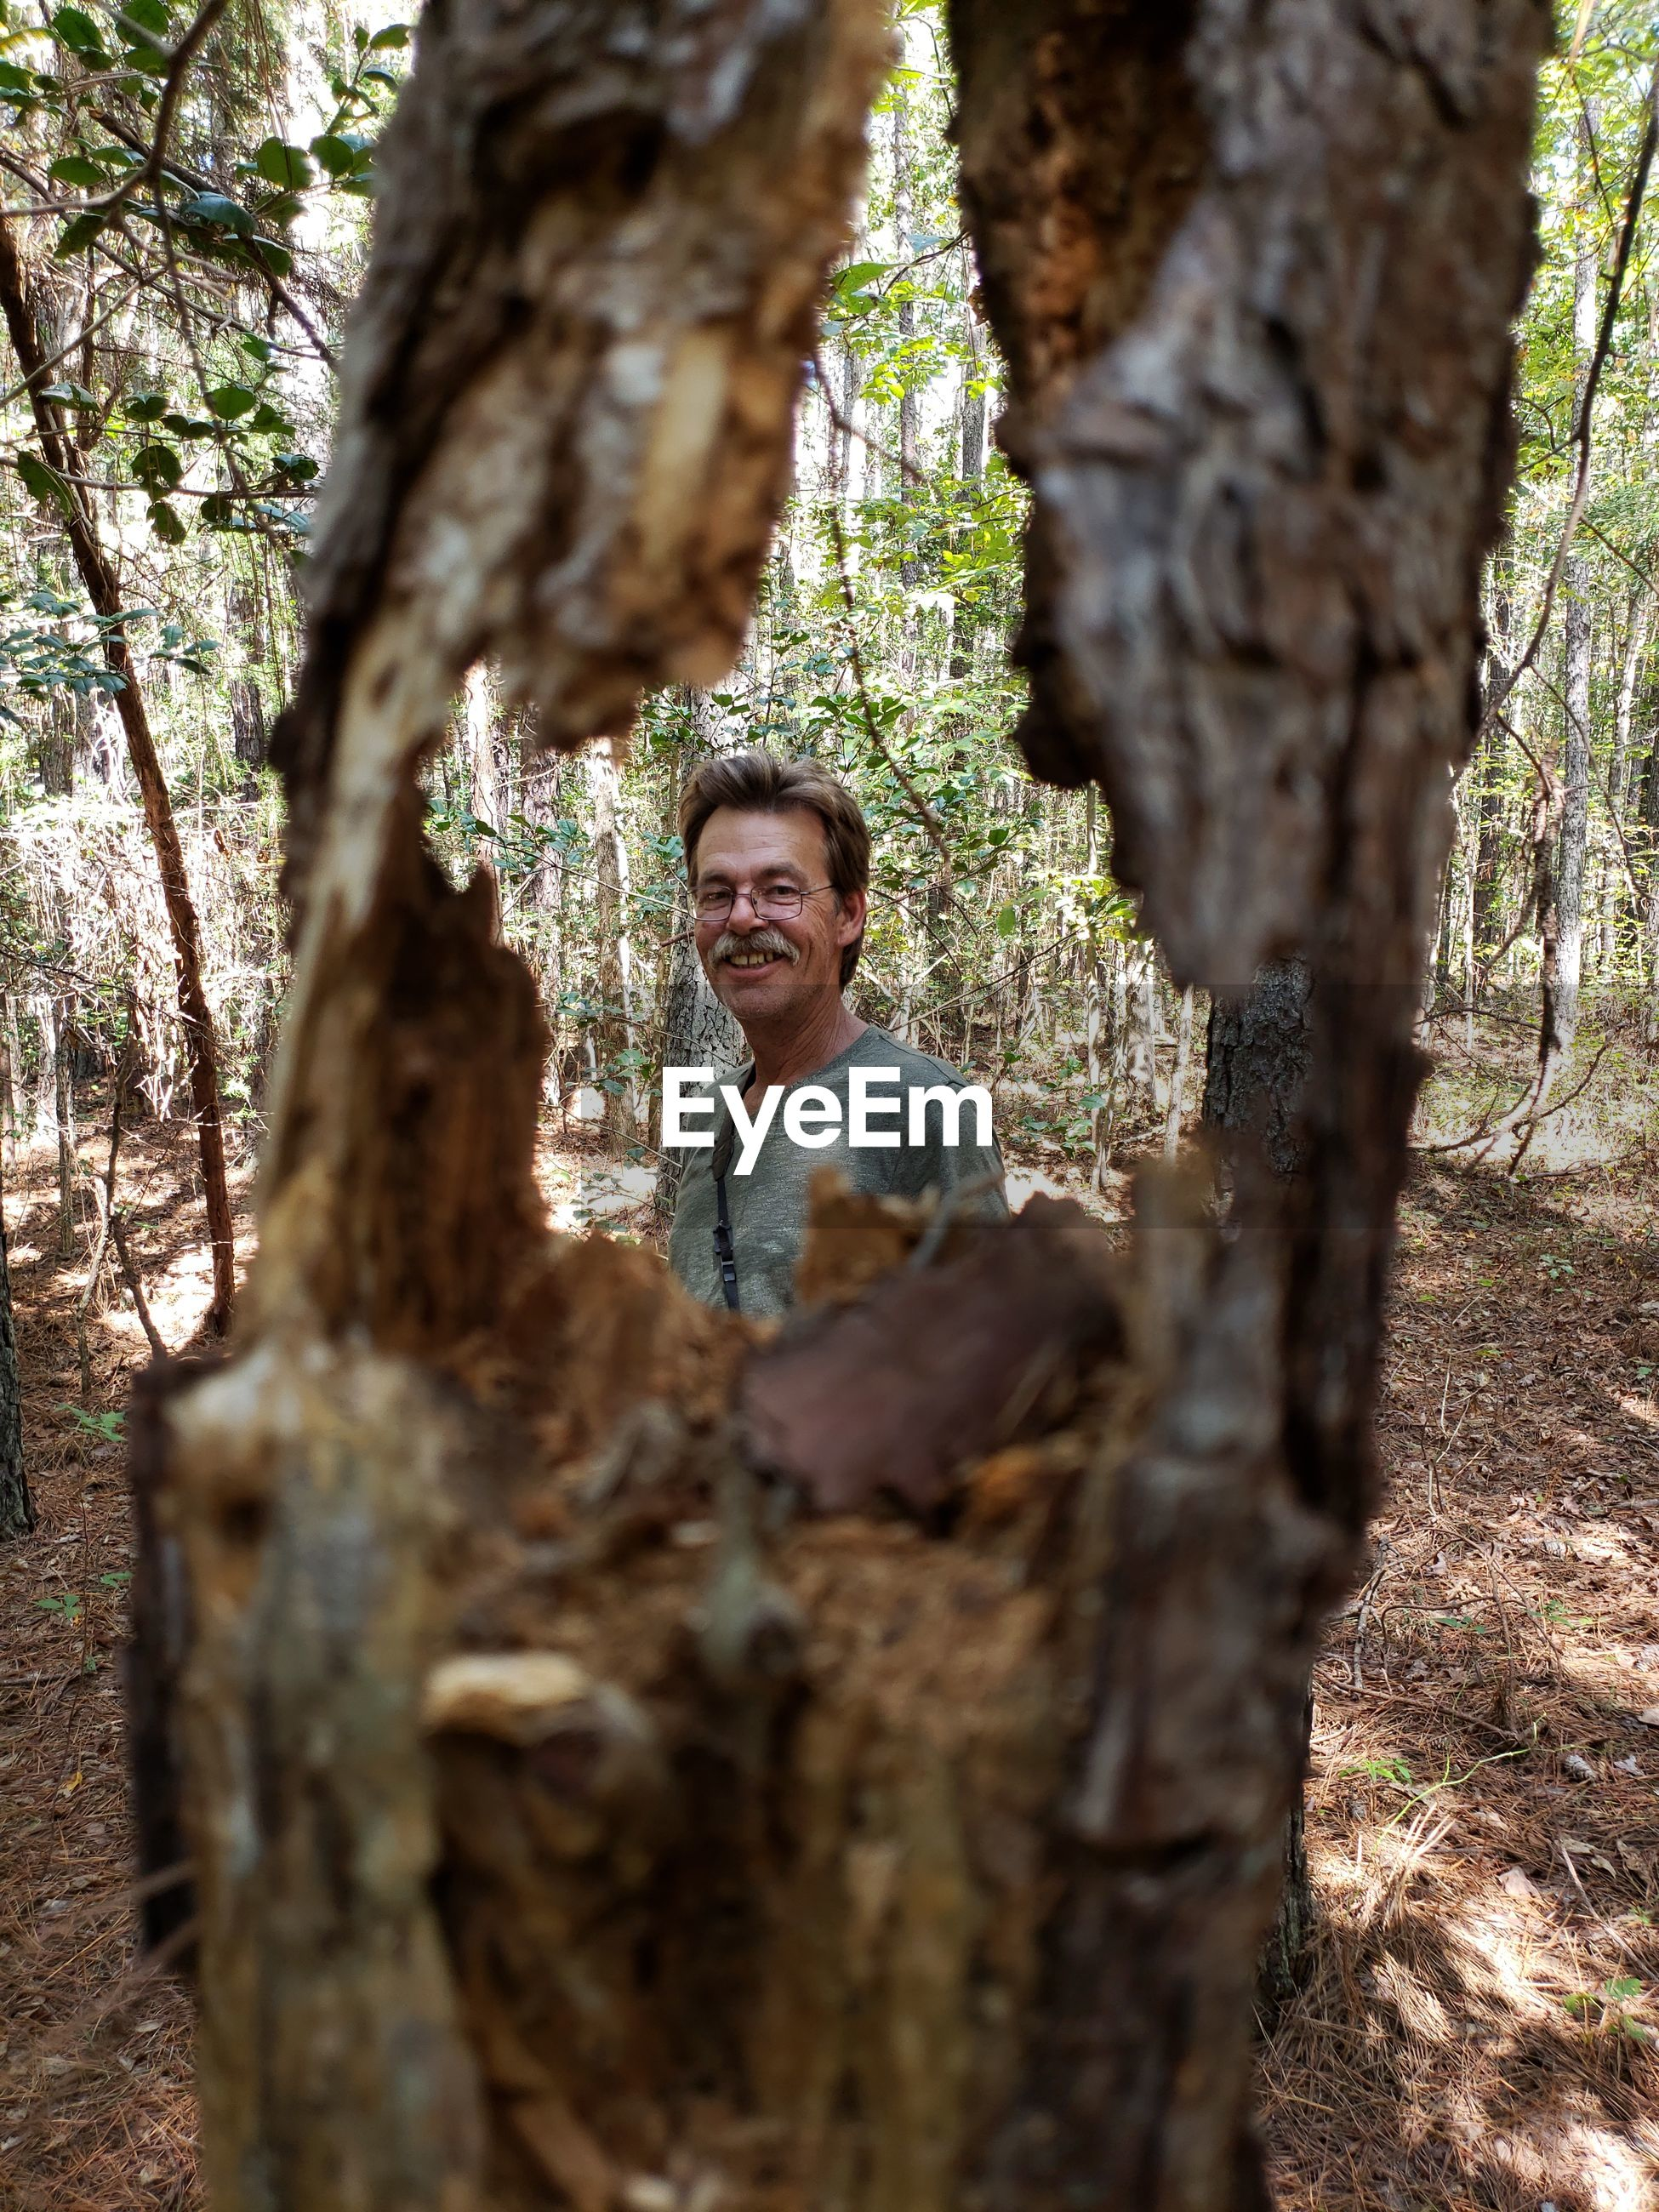 Portrait of smiling man seen through damaged tree trunk in forest